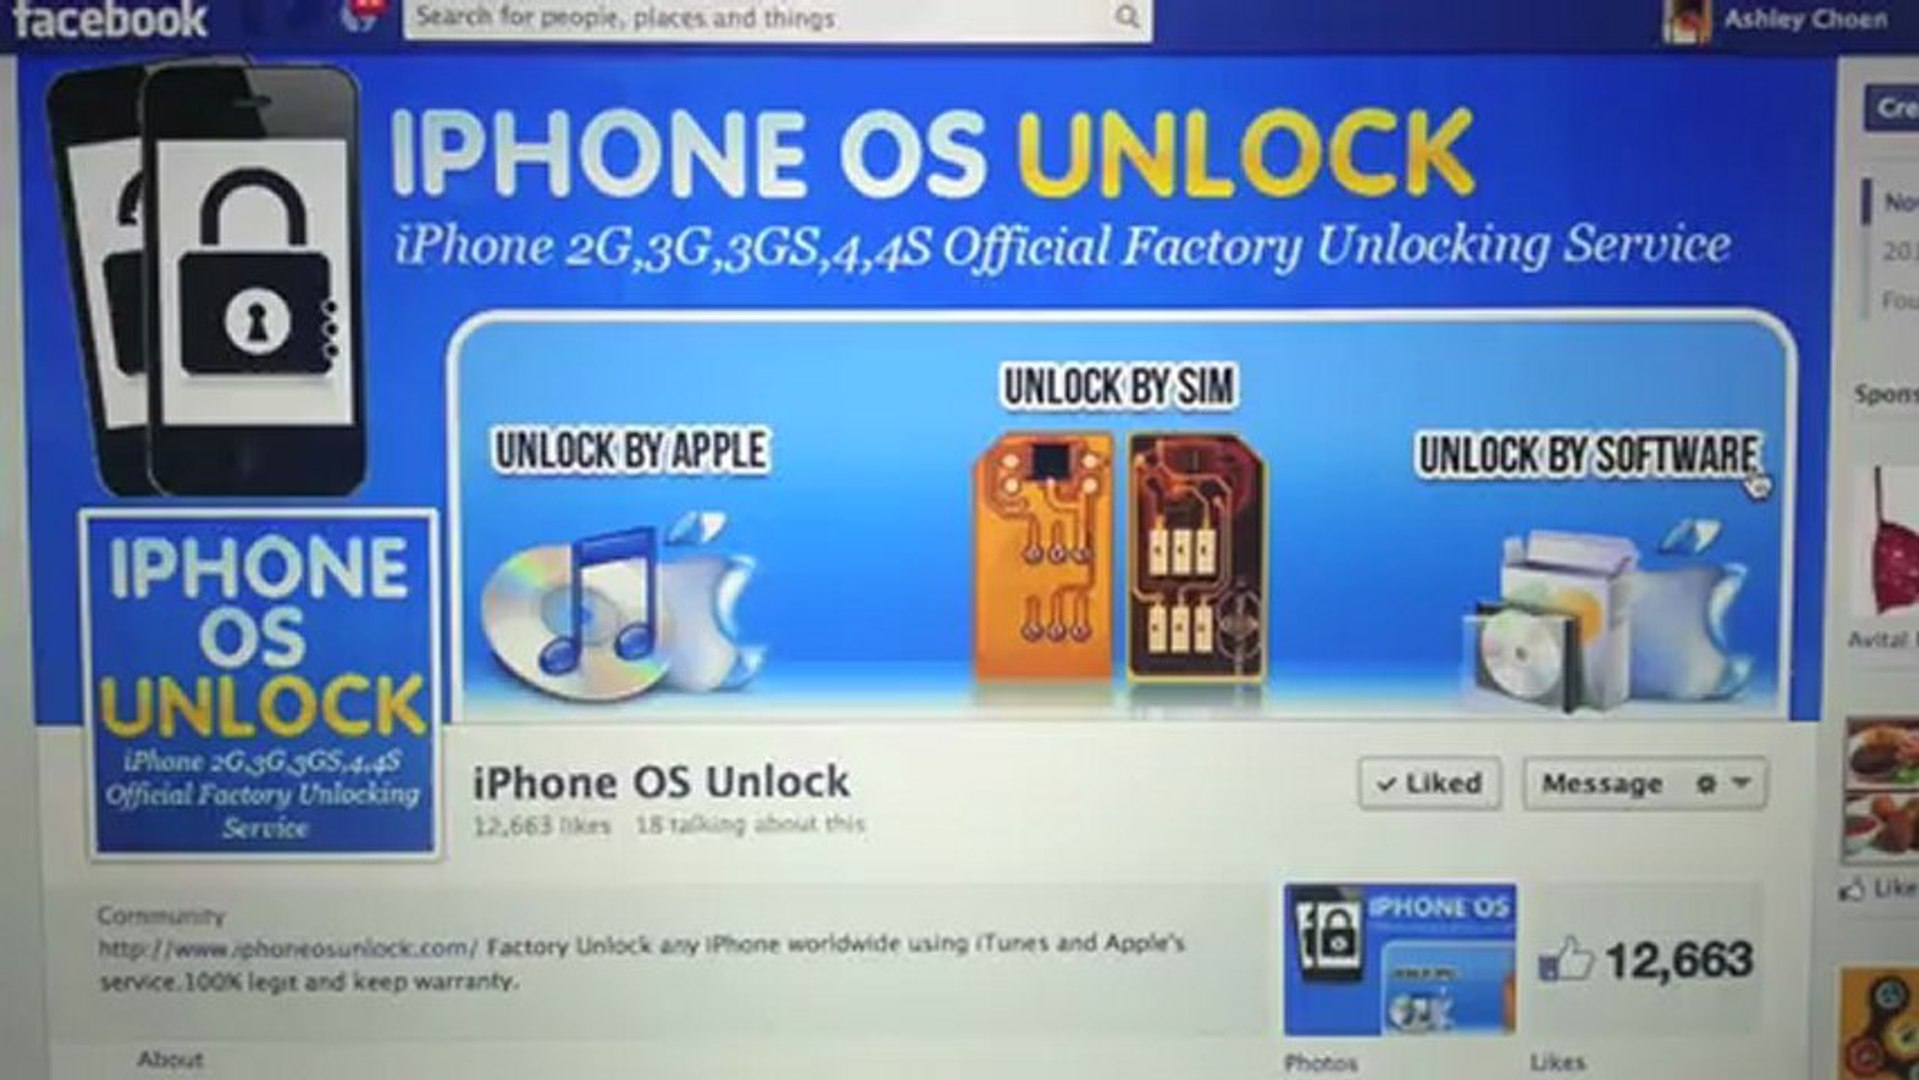 How to Unlock iPhone 4 4S 5 with Factory Unlock